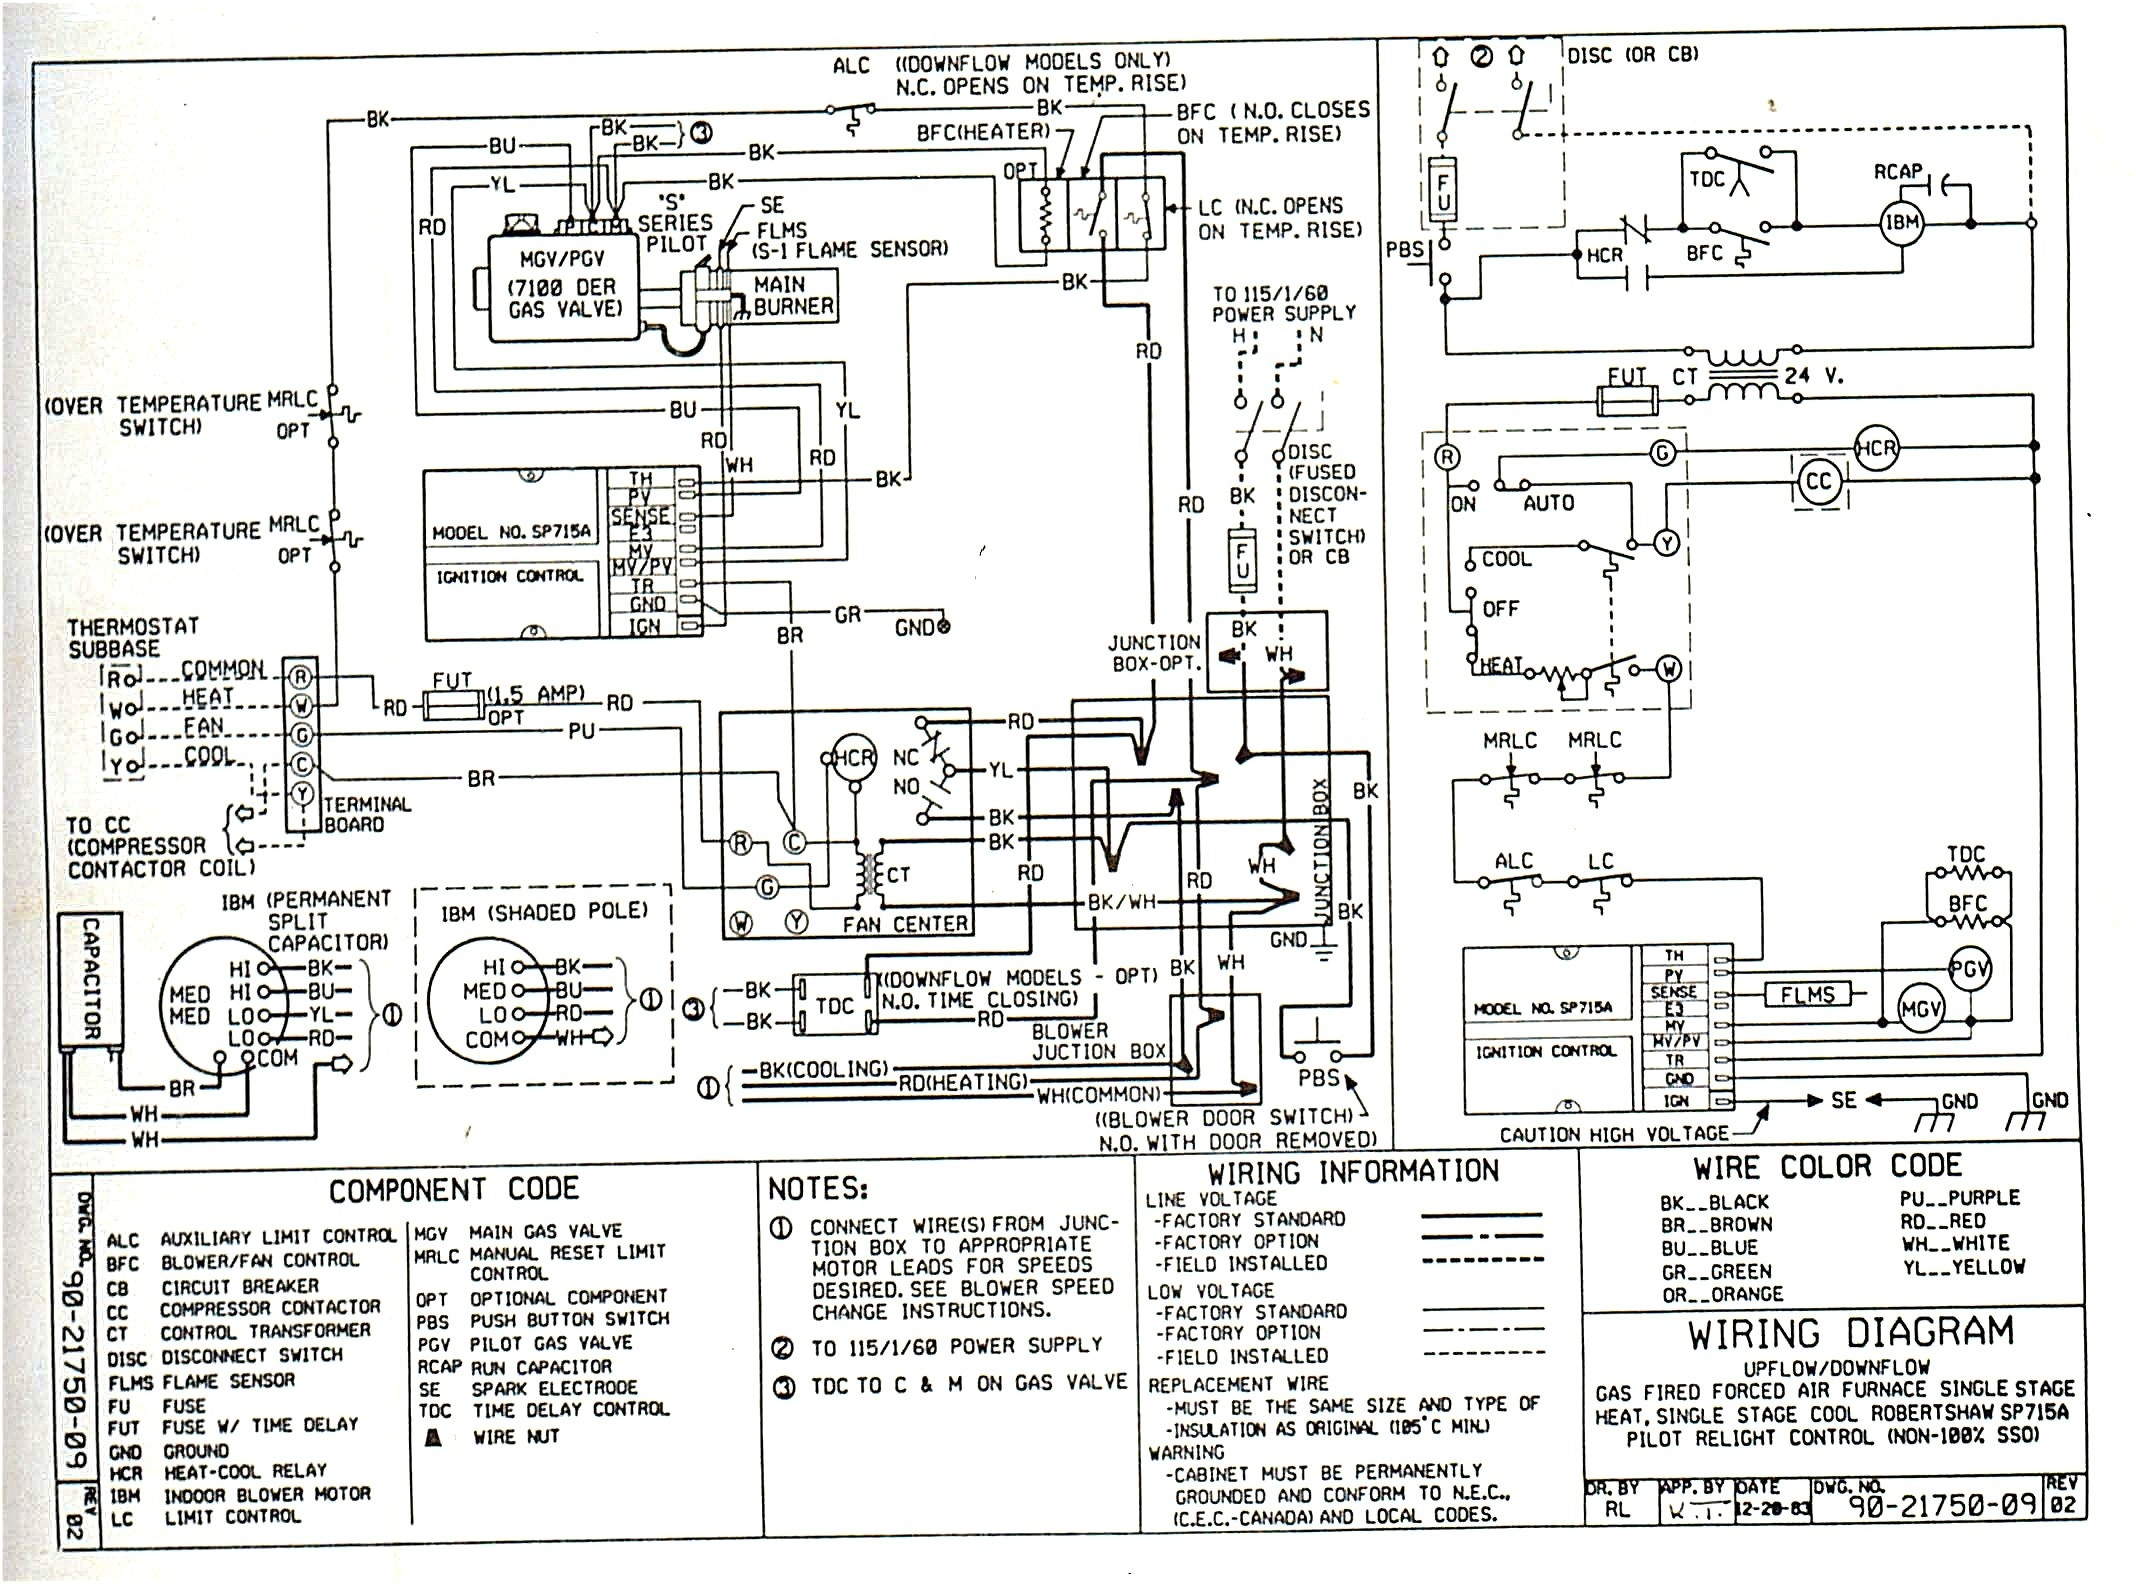 tempstar heat pump wiring diagram Collection-Heil Gas Furnace Wiring Diagram Refrence Tempstar Ac Wiring Diagram New Tempstar Furnace Wiring Diagram 10-o